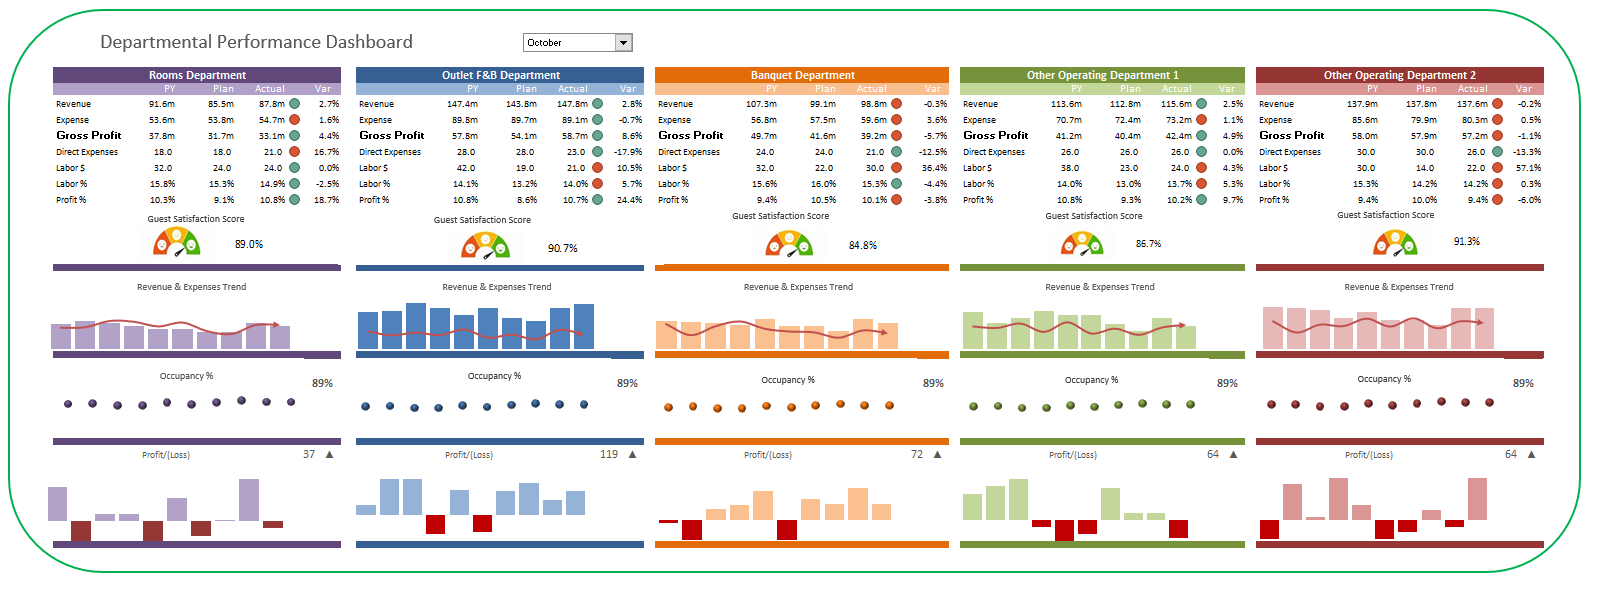 Dpartmental Performance Dashboard.png